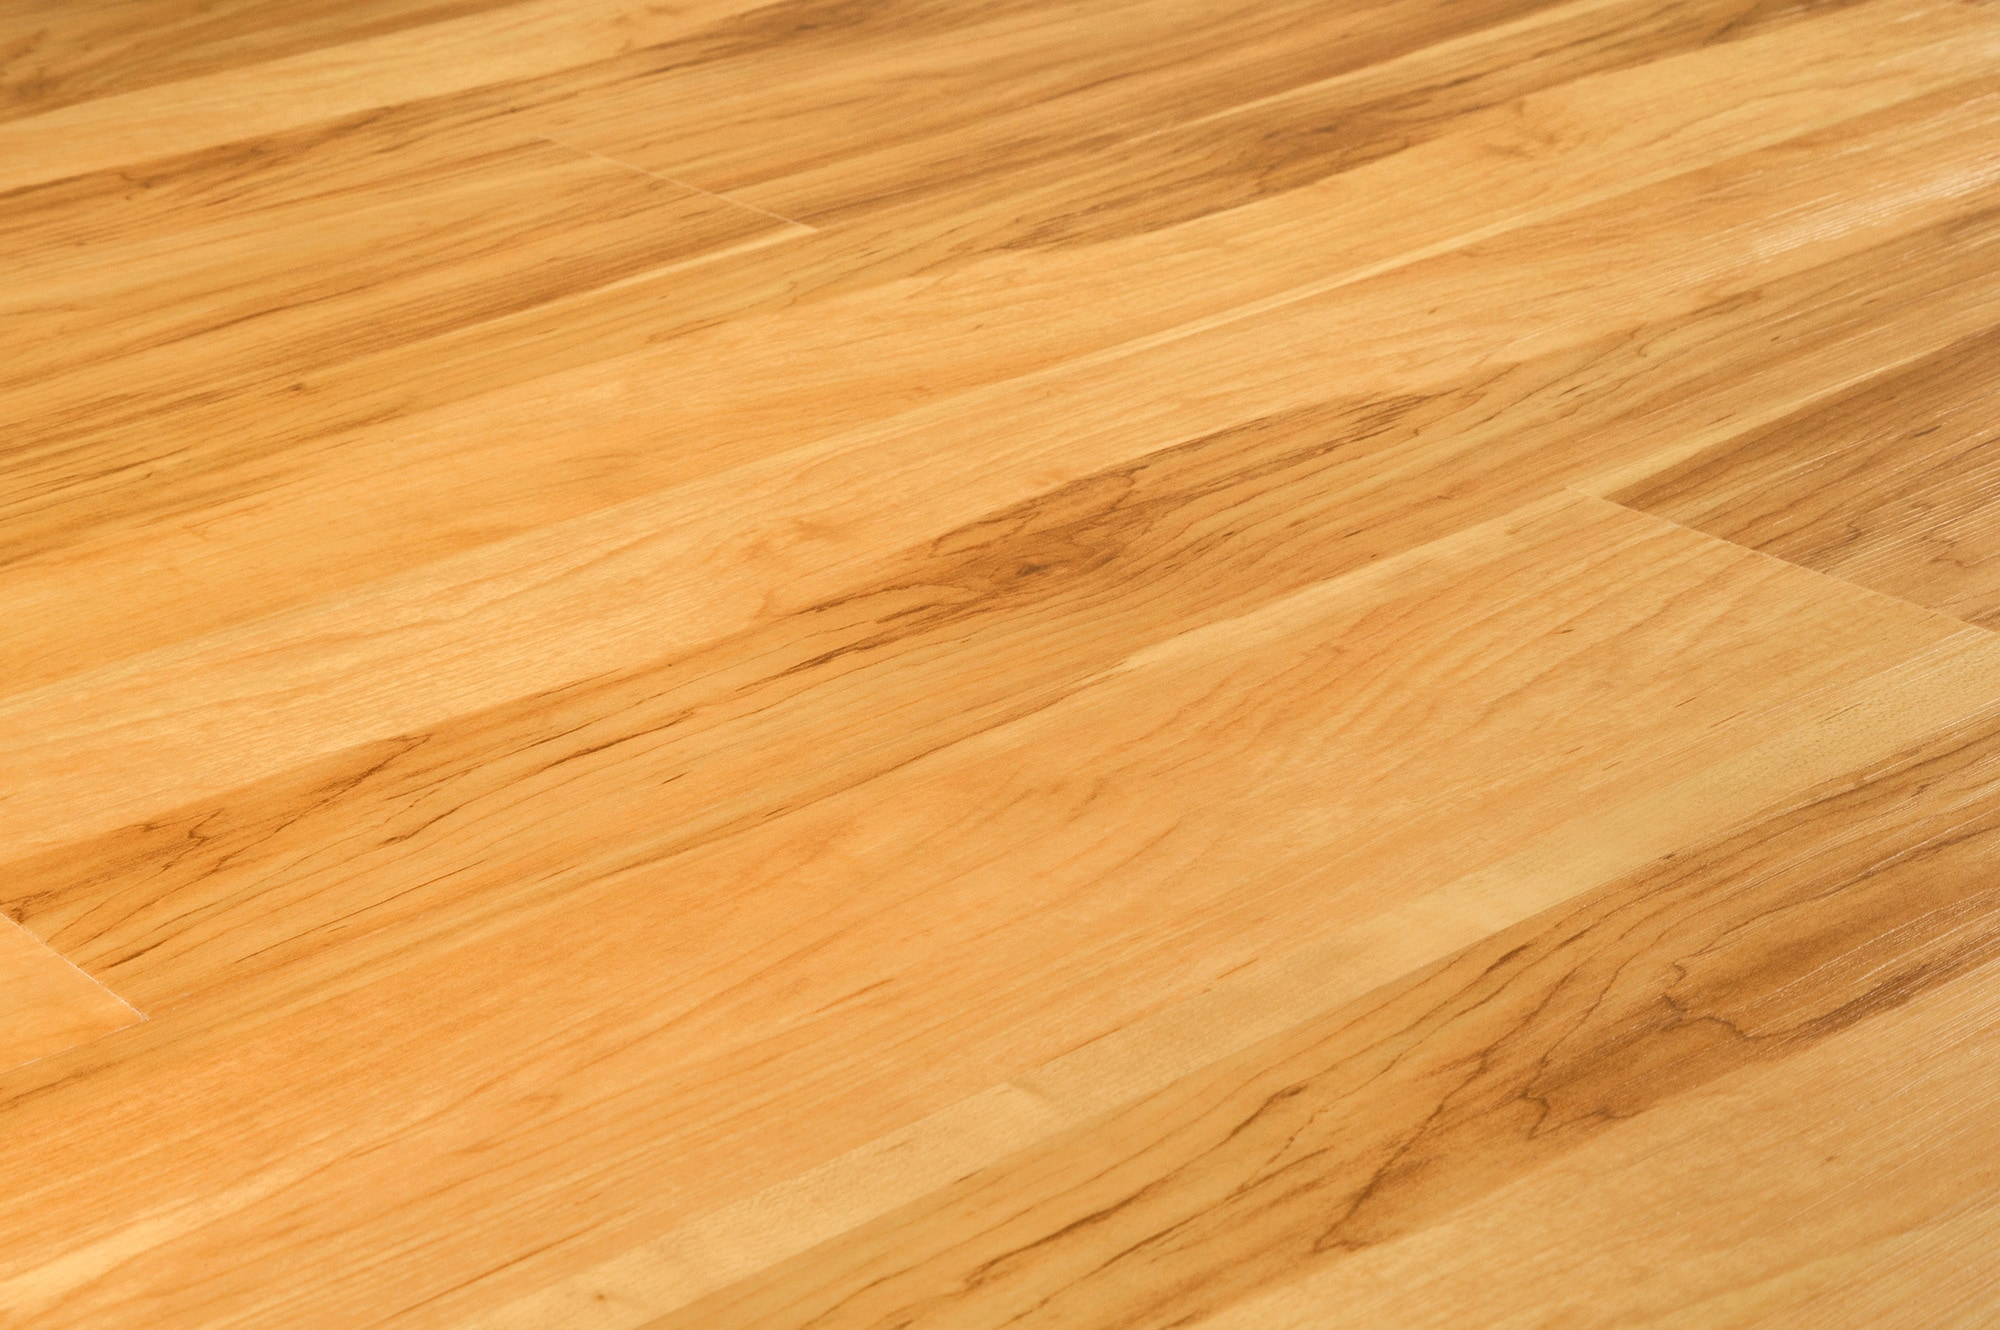 Laminate Flooring Won T Click Together Home Plan